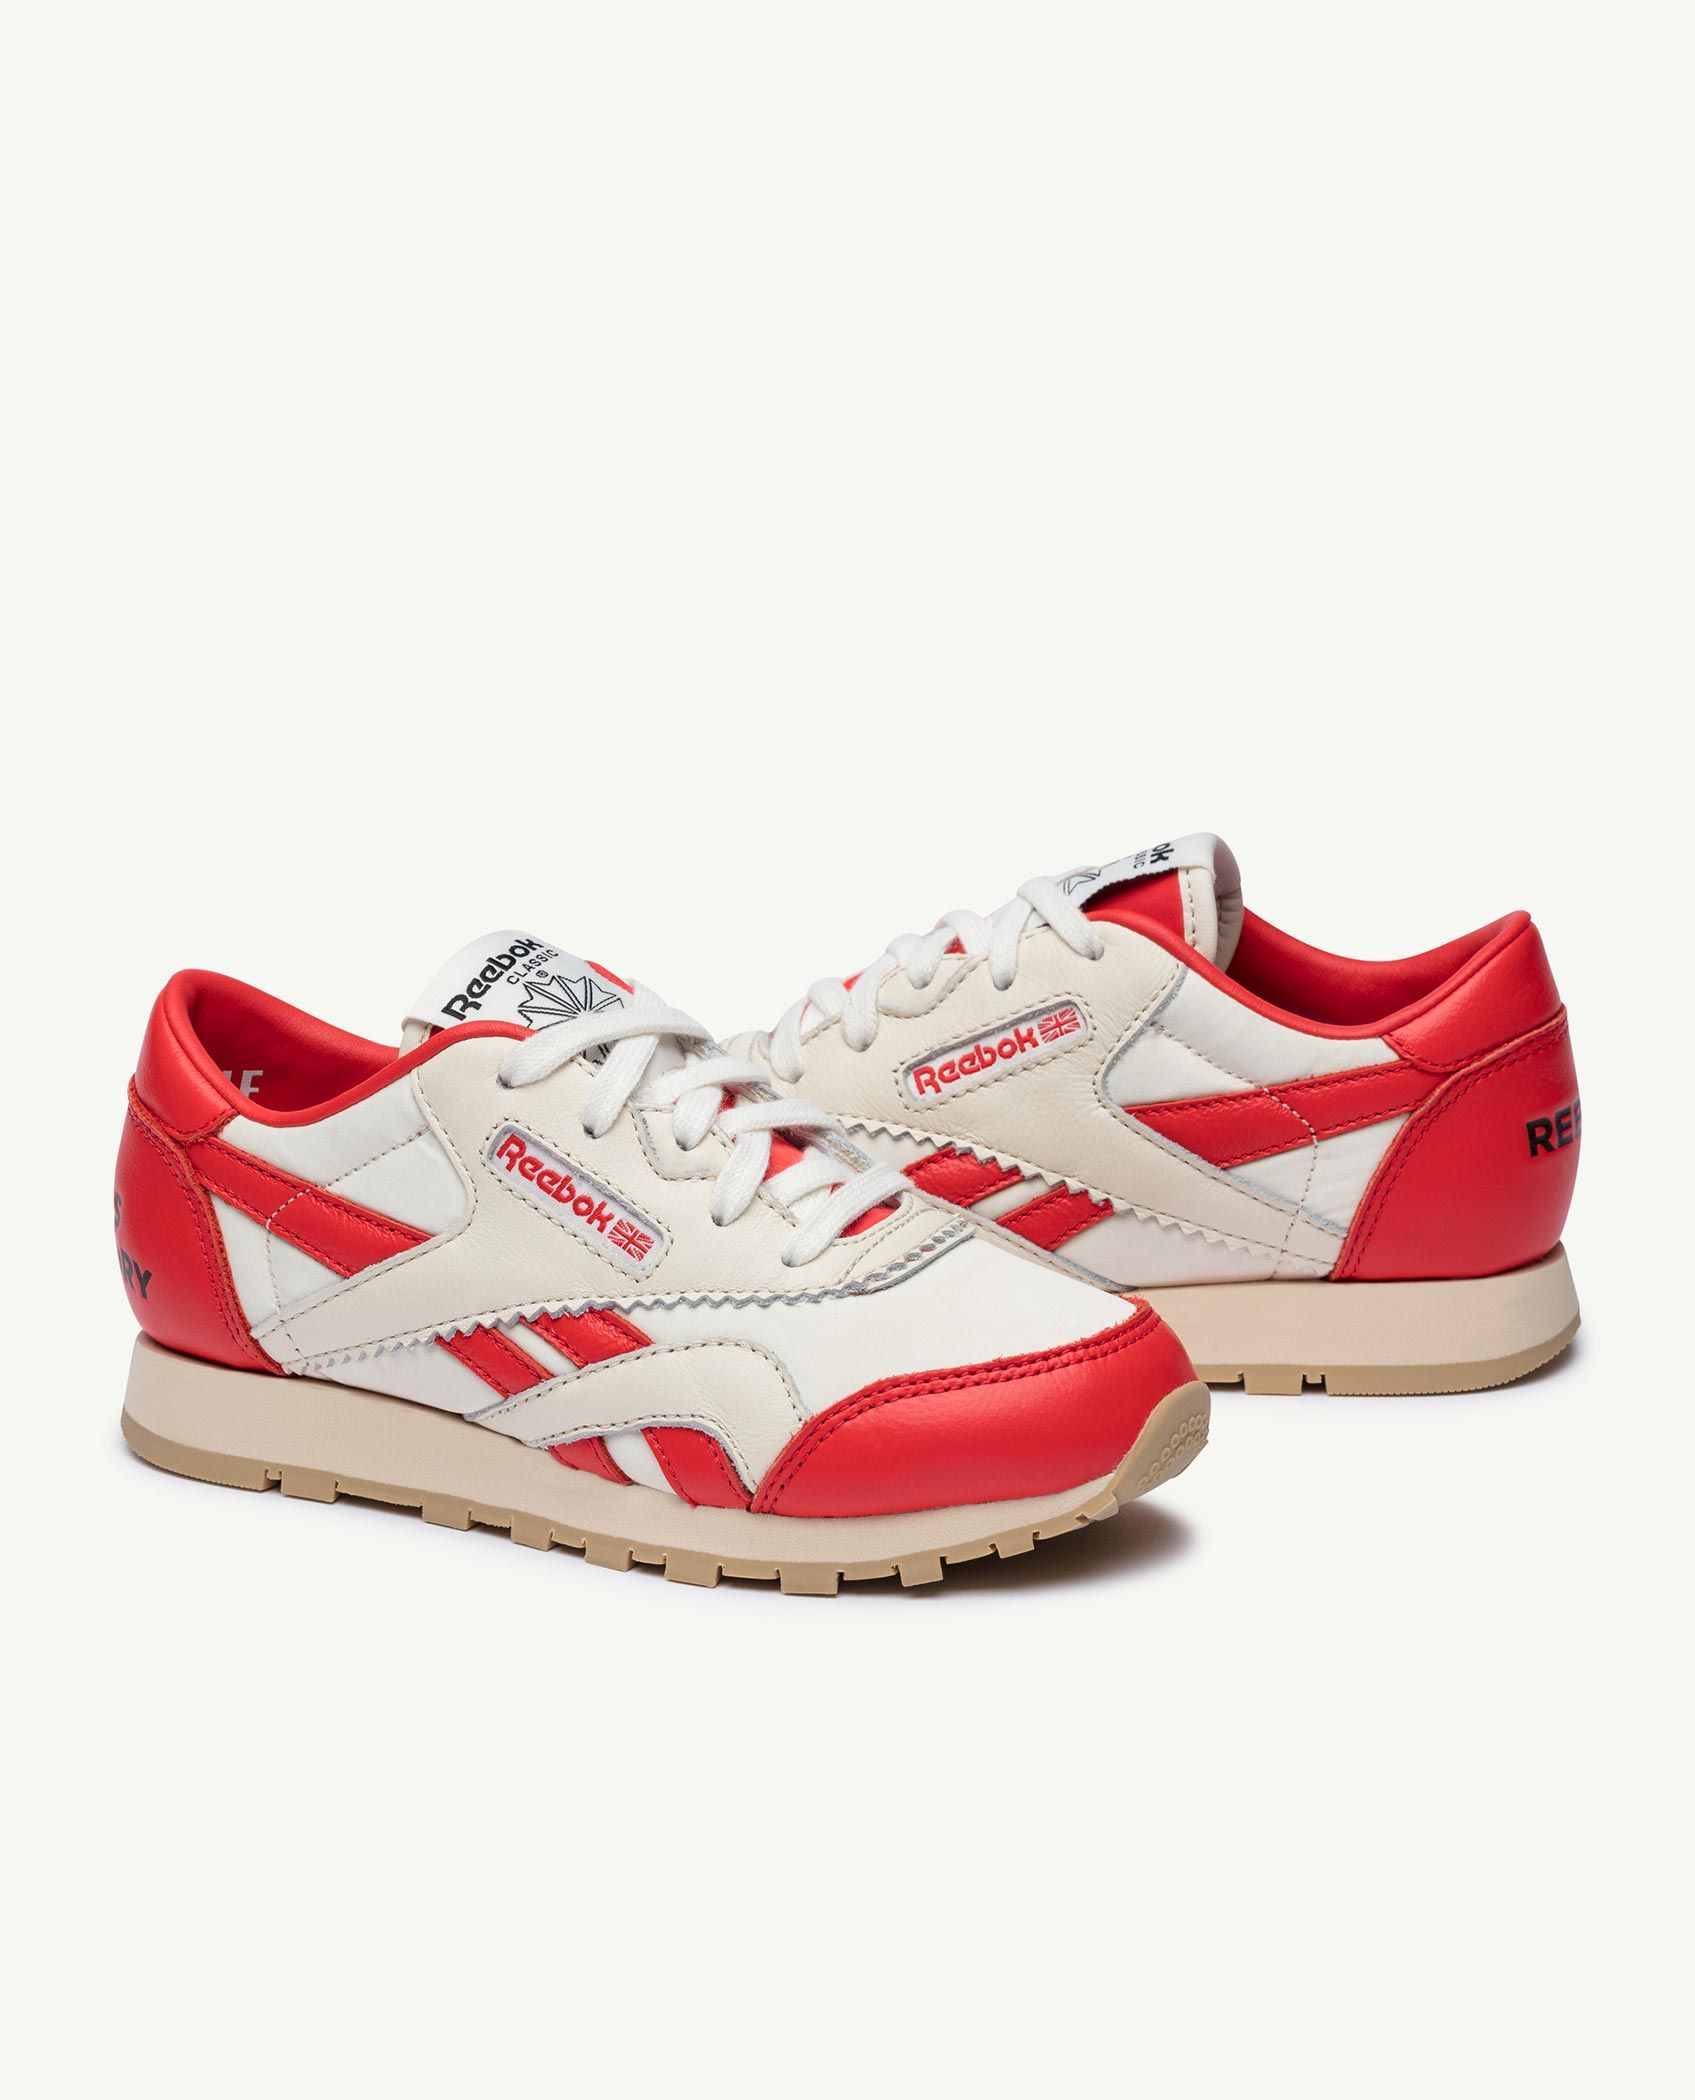 Reebok x The Animals Observatory Classic Nylon Red Kid img-3